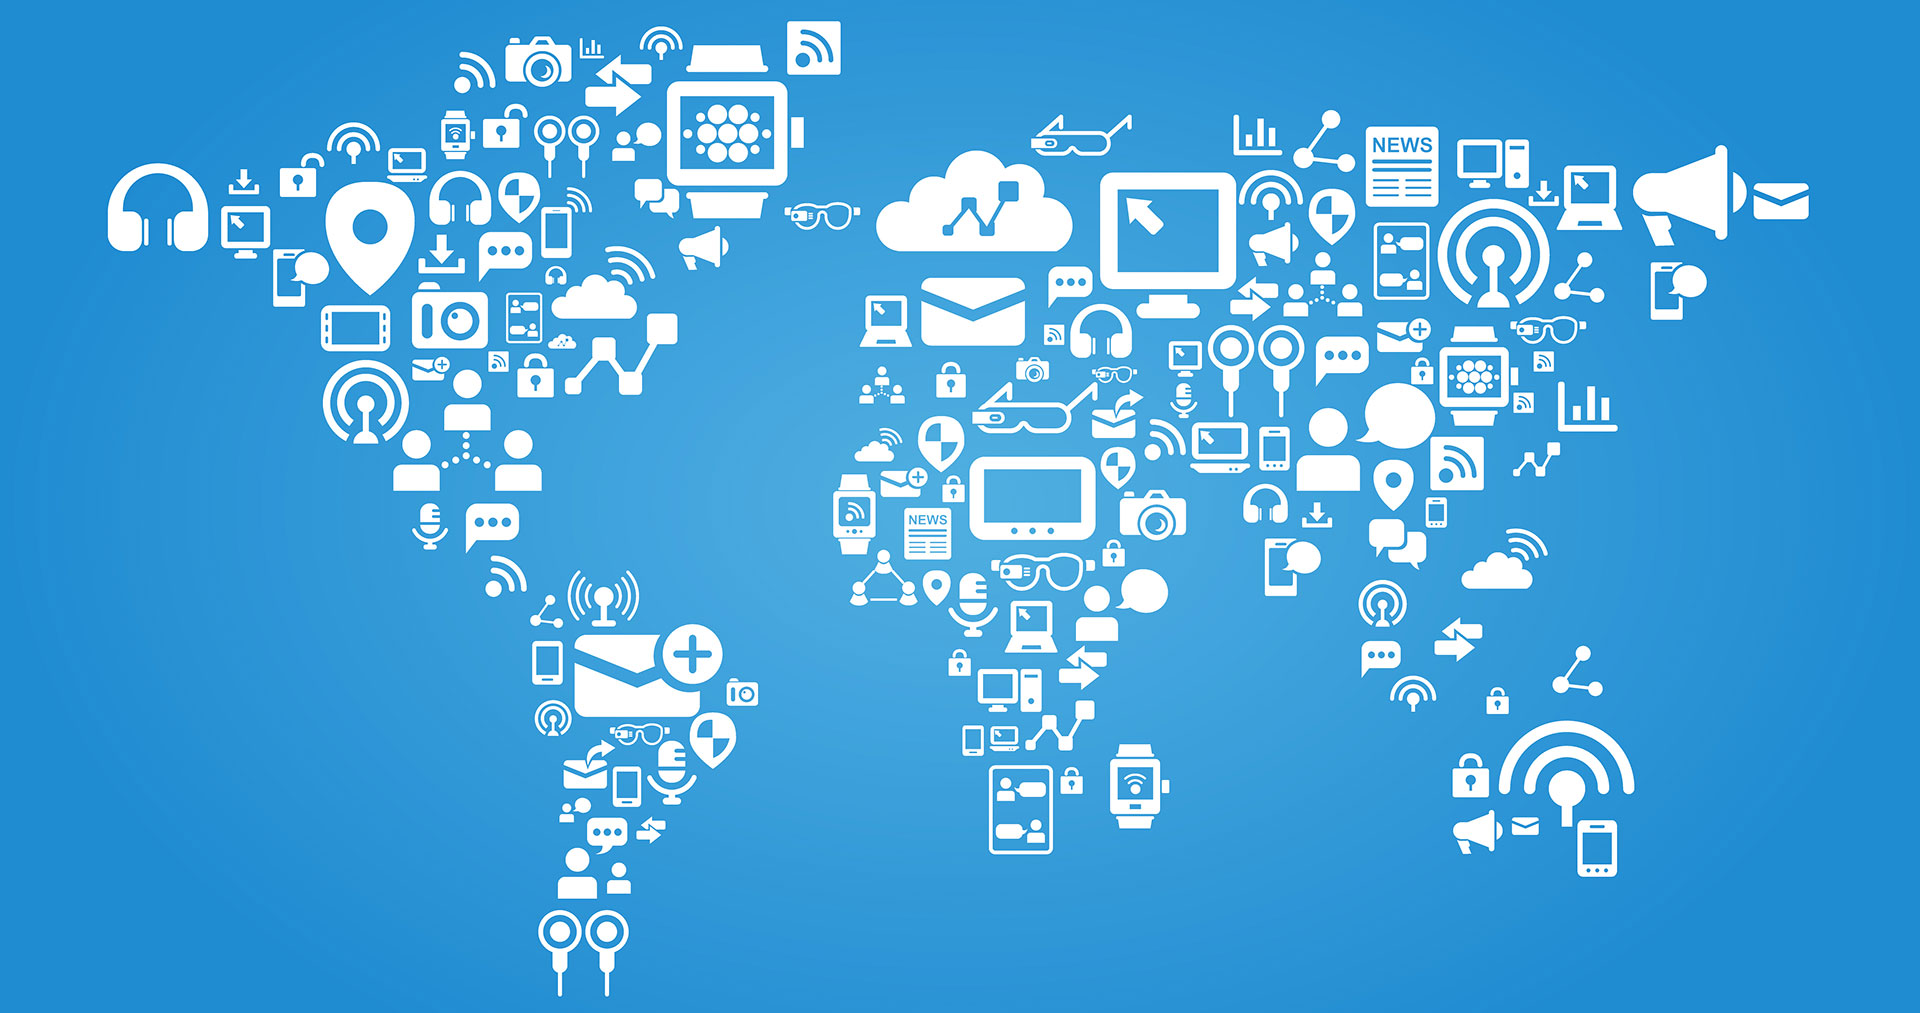 IS YOUR ORGANIZATION IOT READY